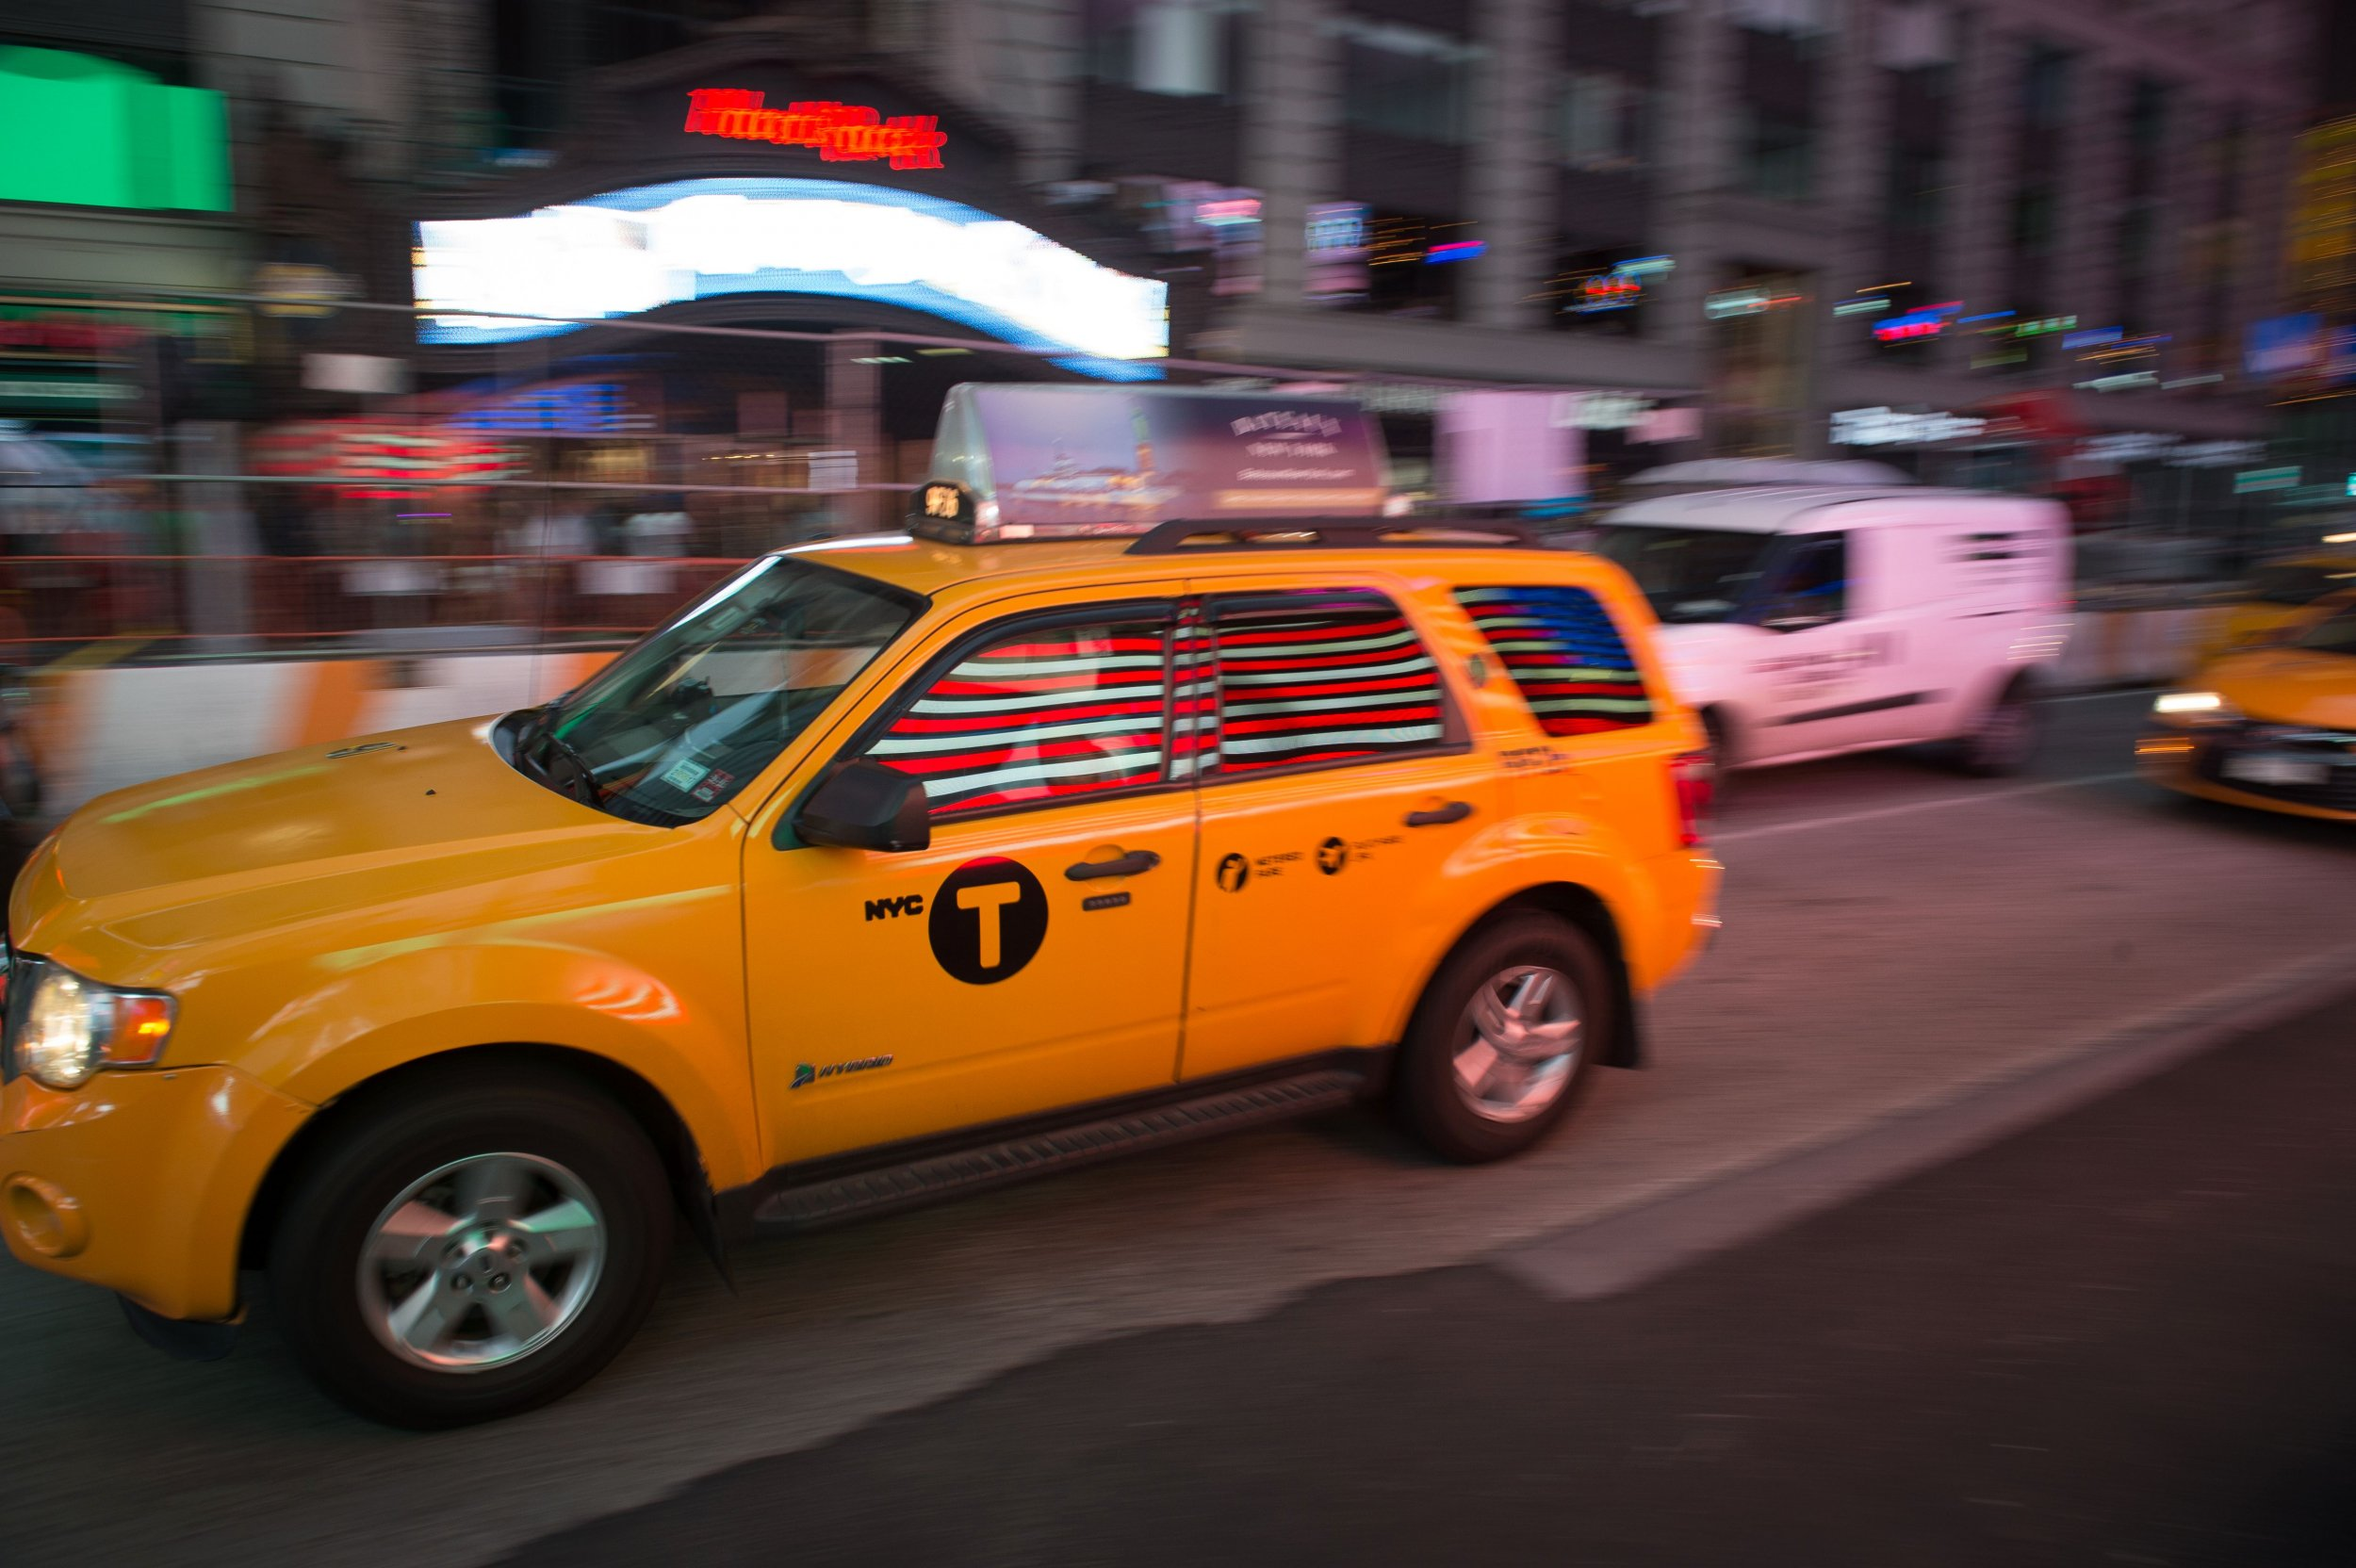 NYC Taxi Drivers Are Killing Themselves, and Some Blame Uber